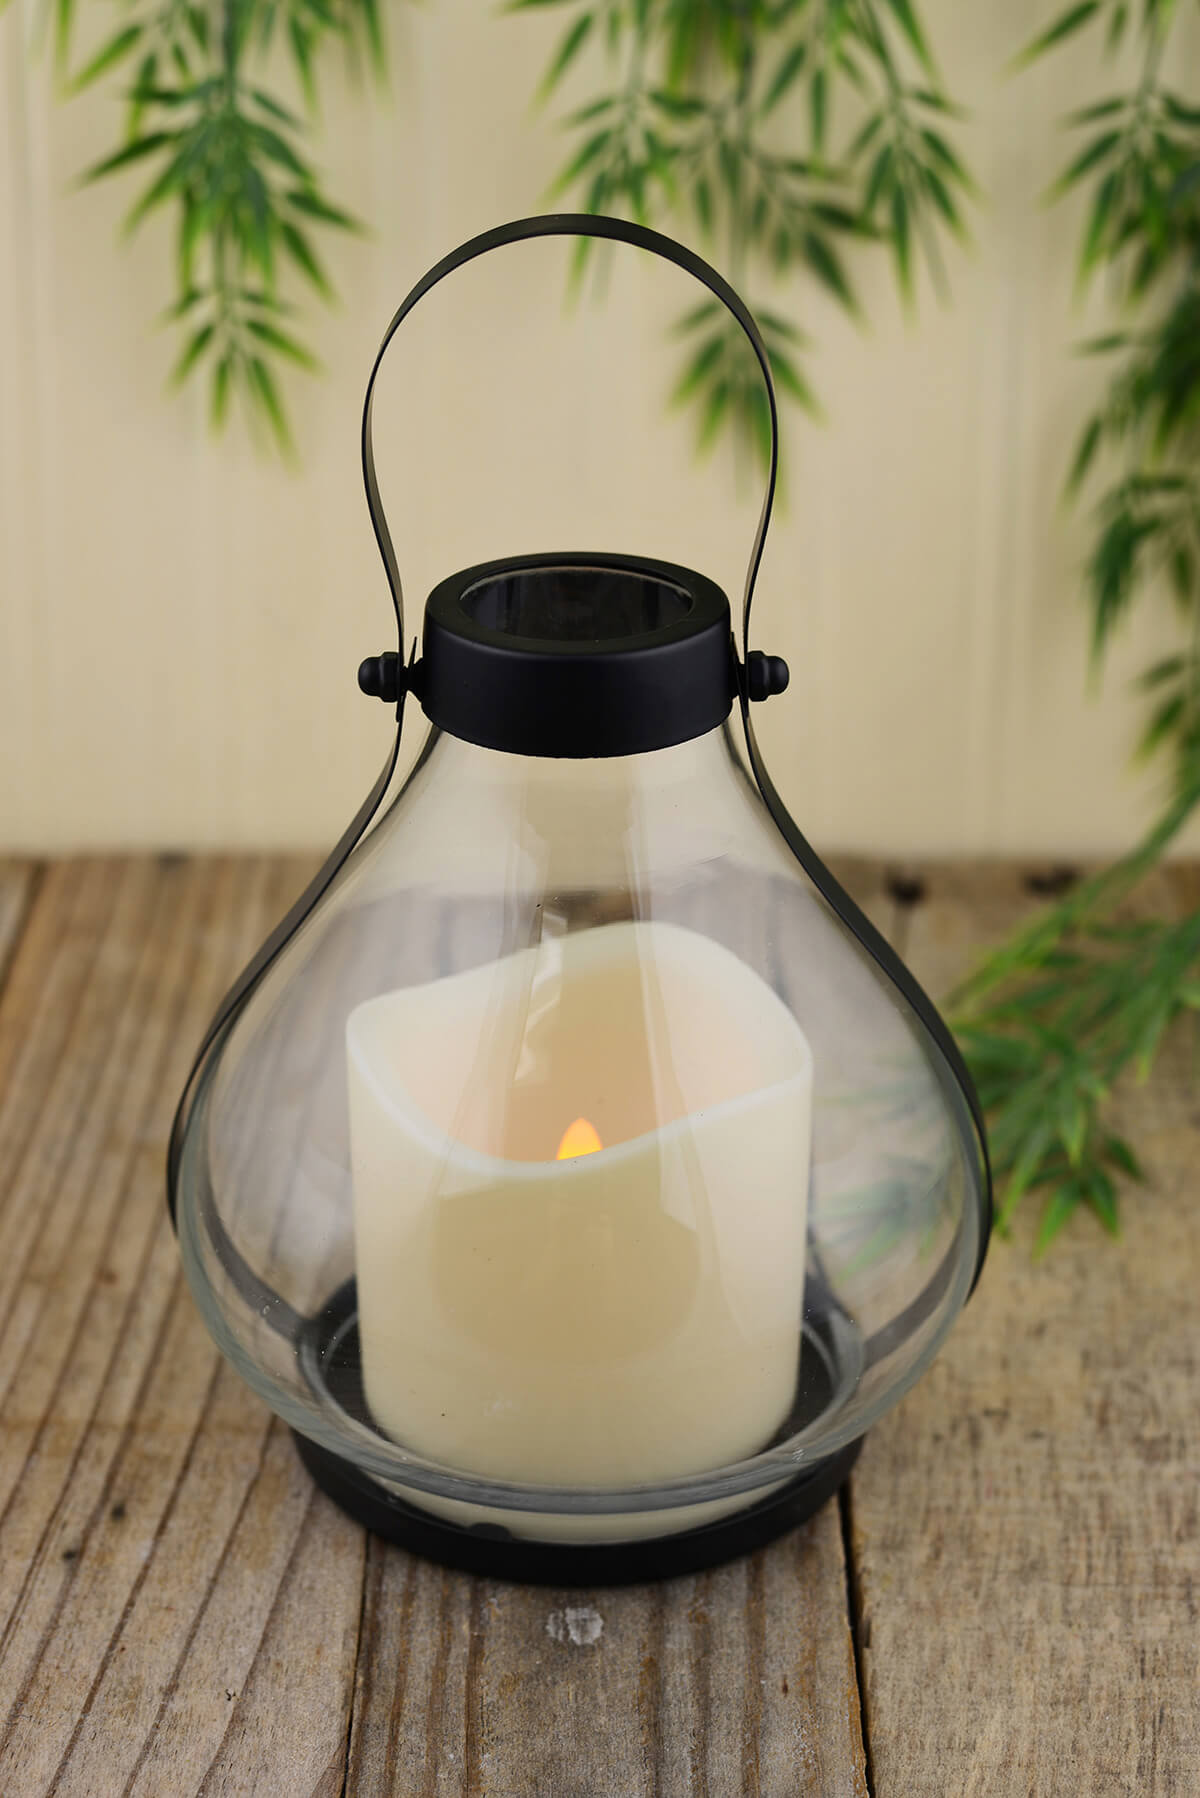 Metal Amp Glass Schoolhouse Lantern With Battery Operated Candle